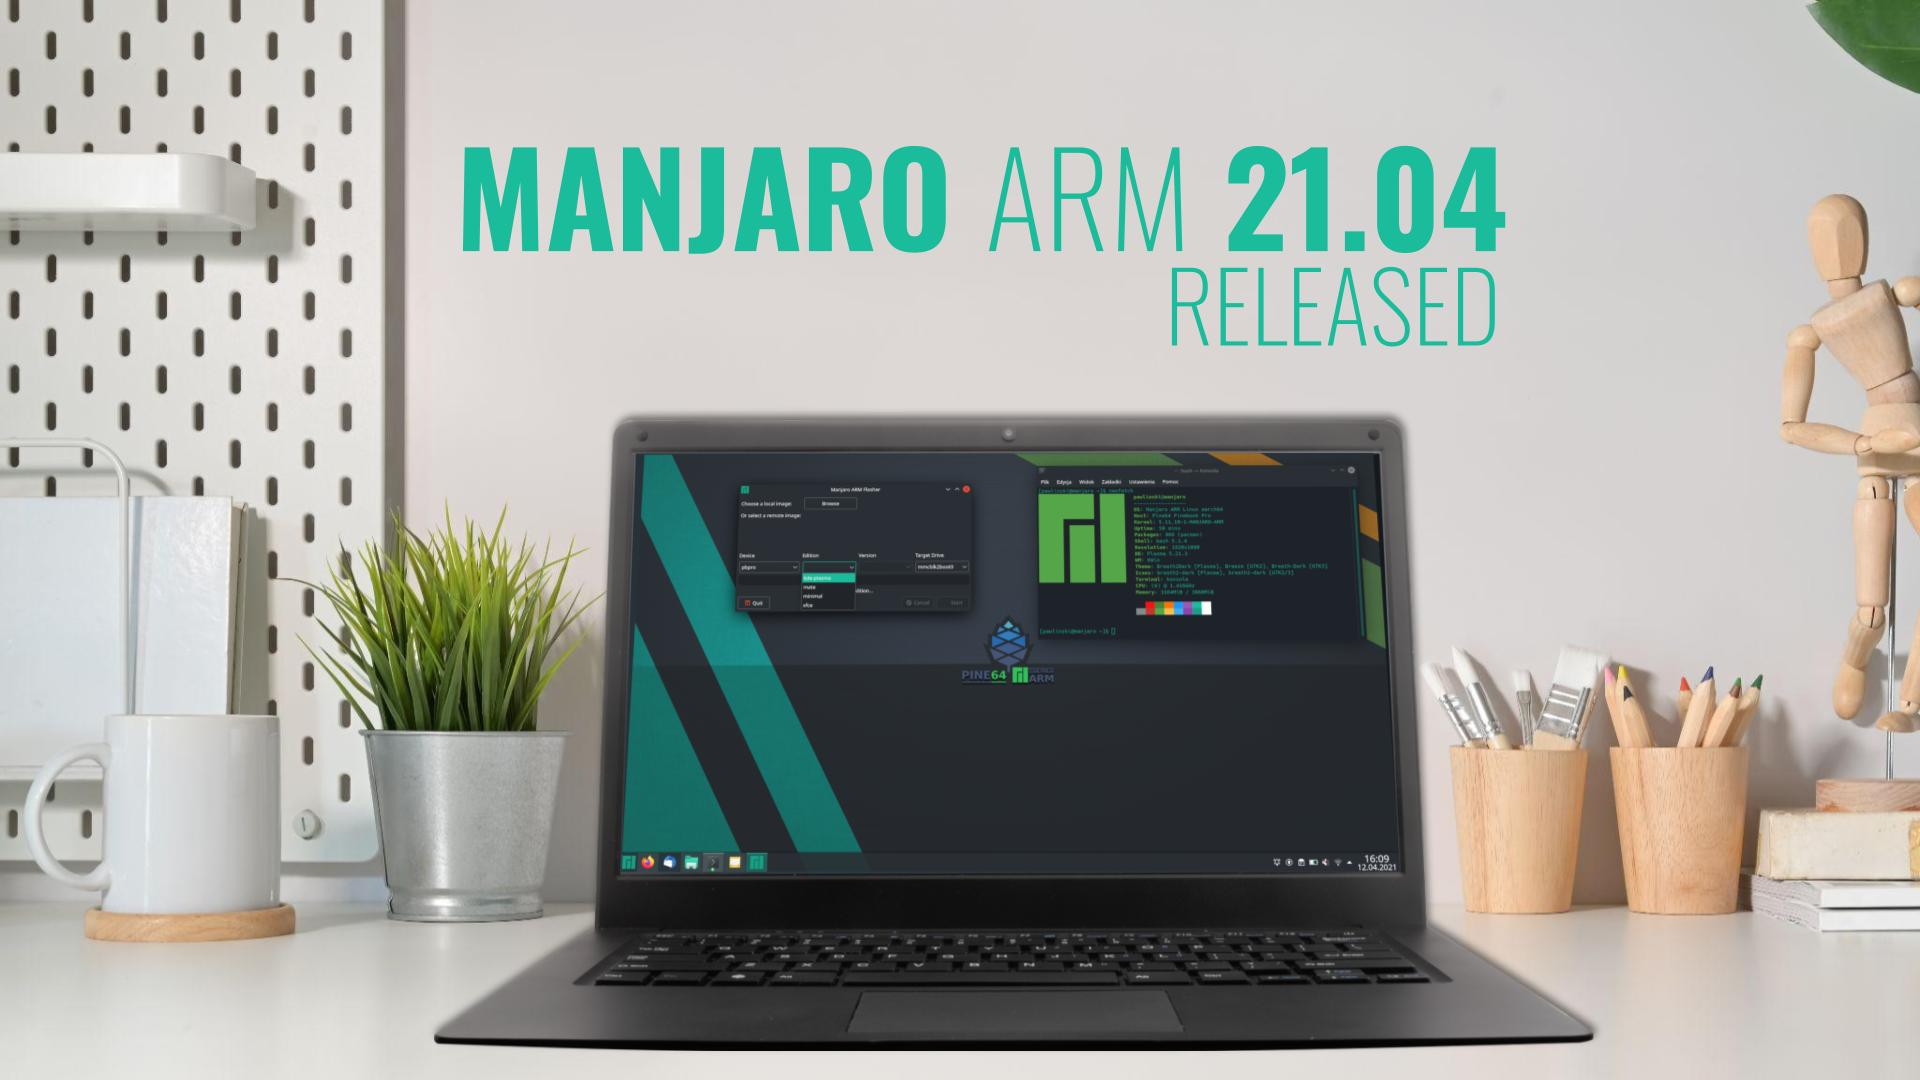 Manjaro ARM 21.04 released for Pine64 devices